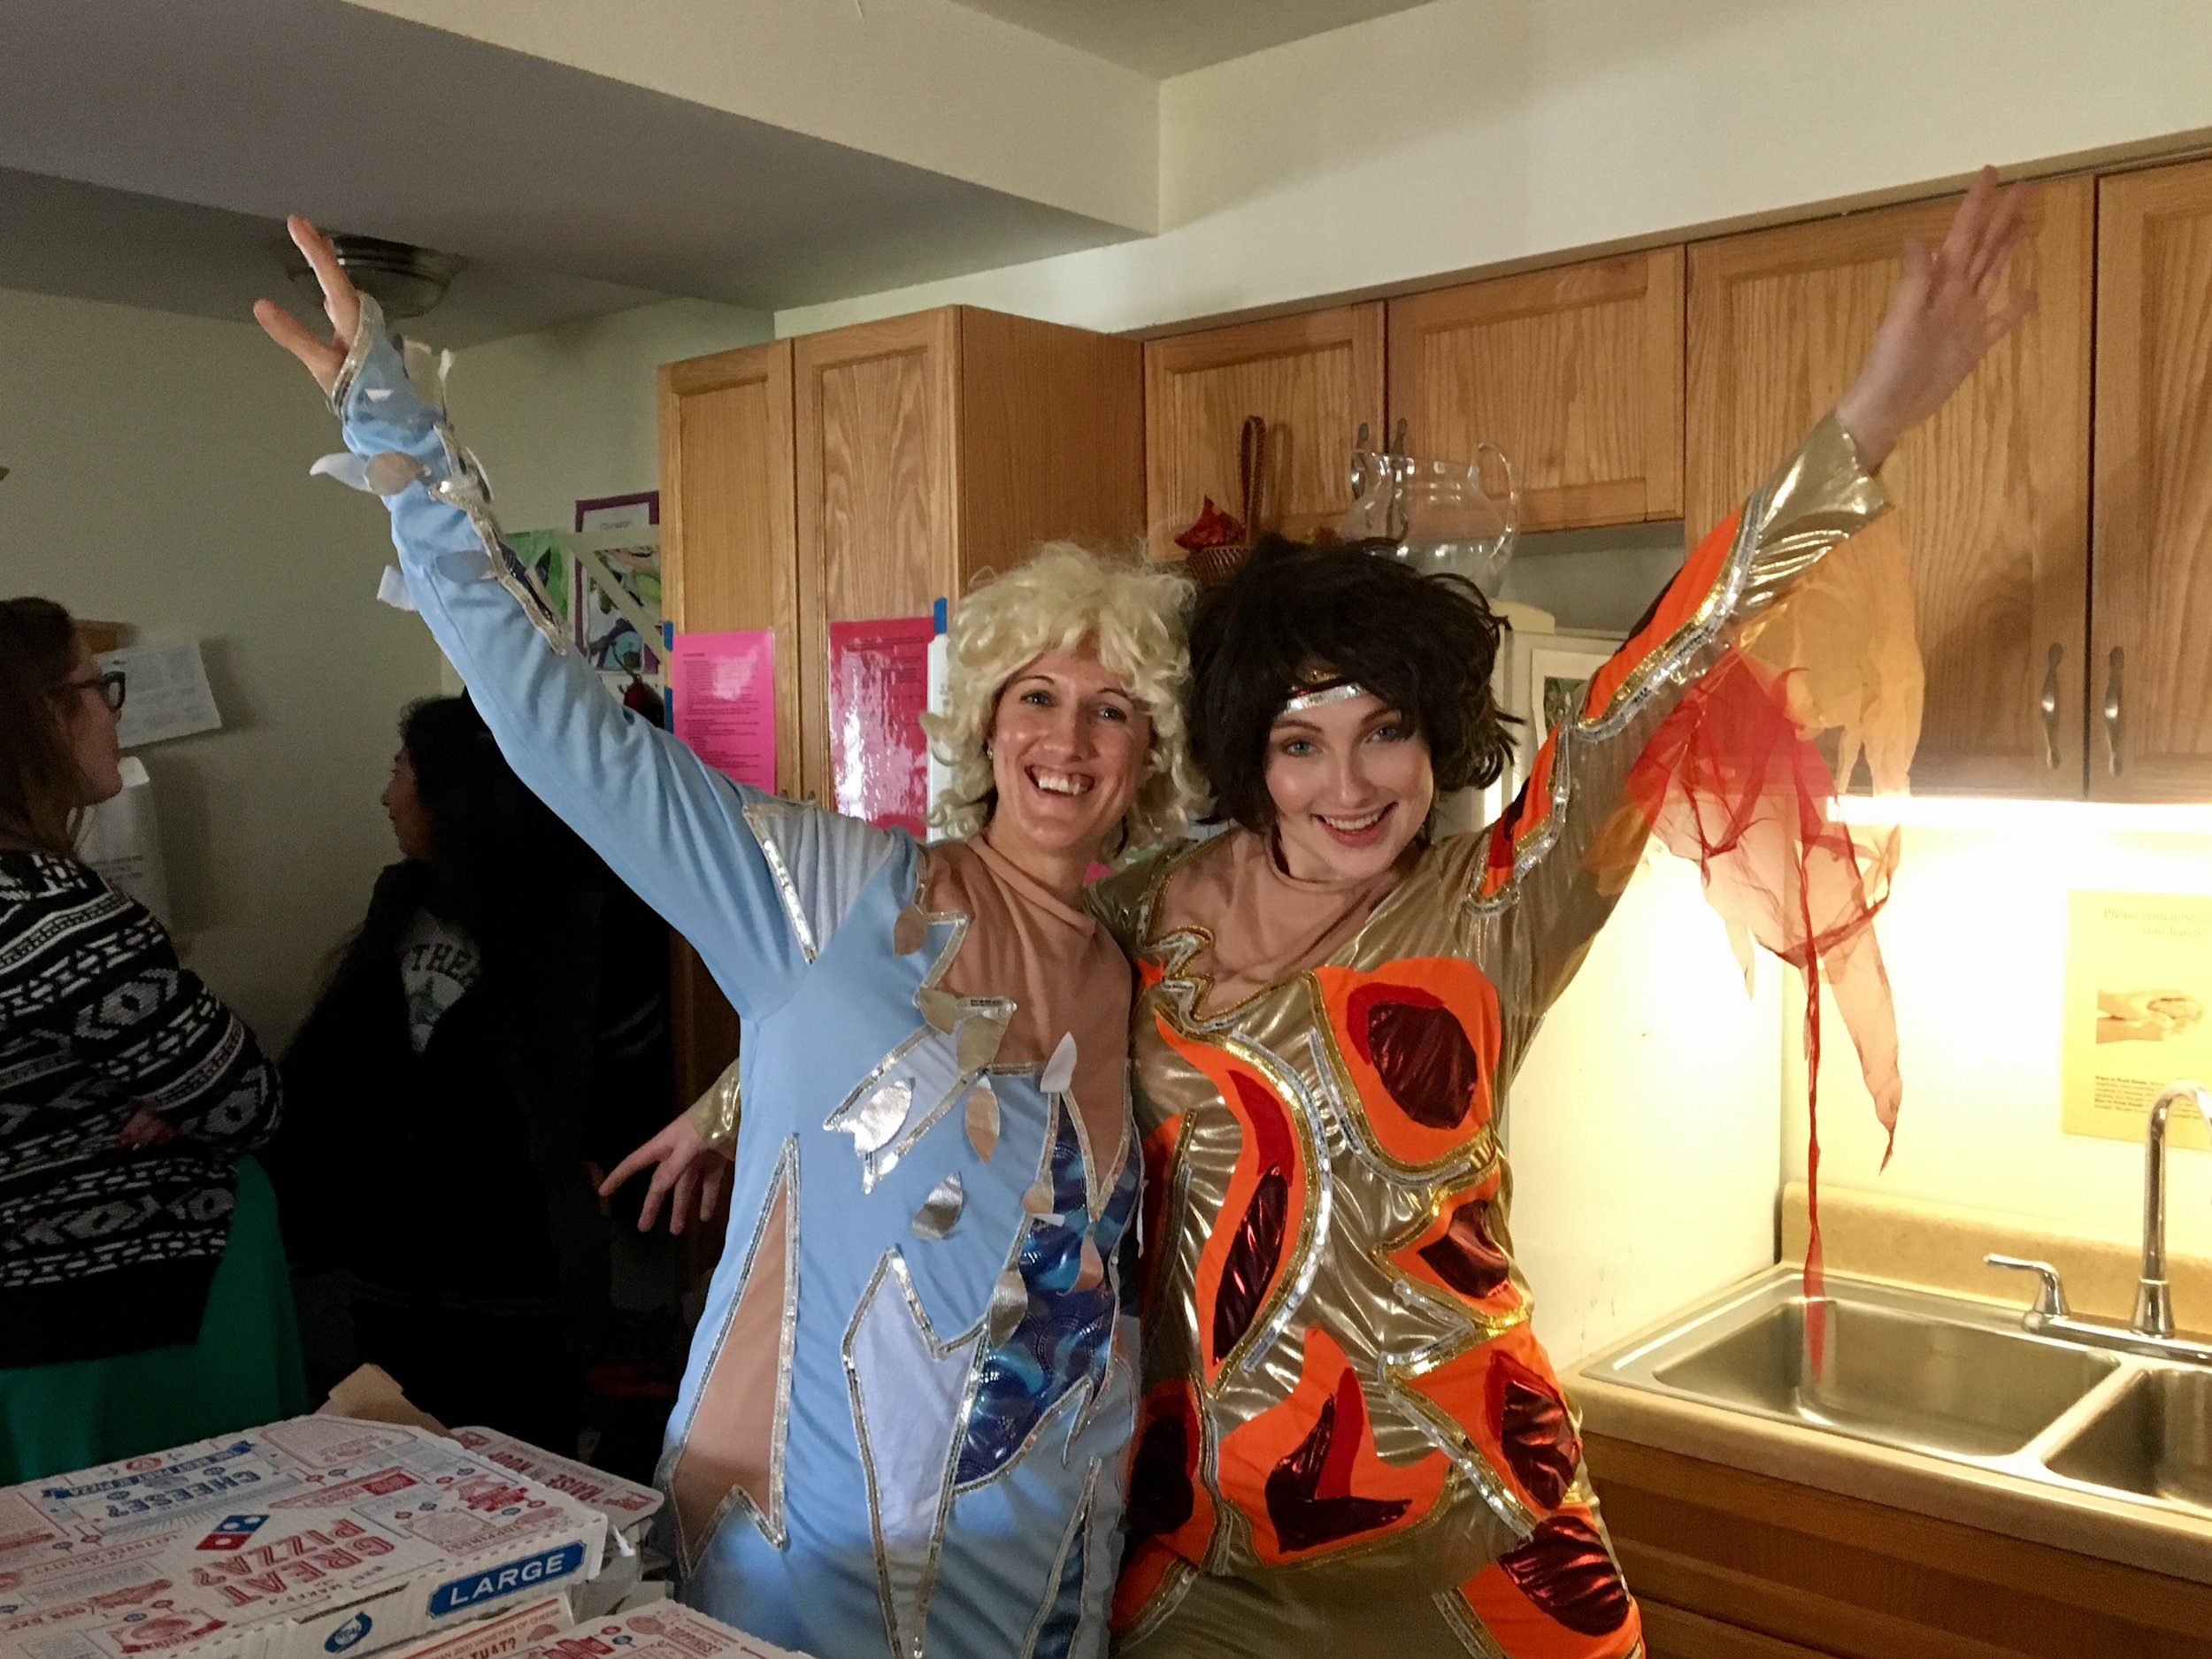 """Impact's Clinical Manager, Kristin Johanns, (left) and Development Coordinator, Emily Young, (right) strike a pose as the stars of """"Blades of Glory."""""""